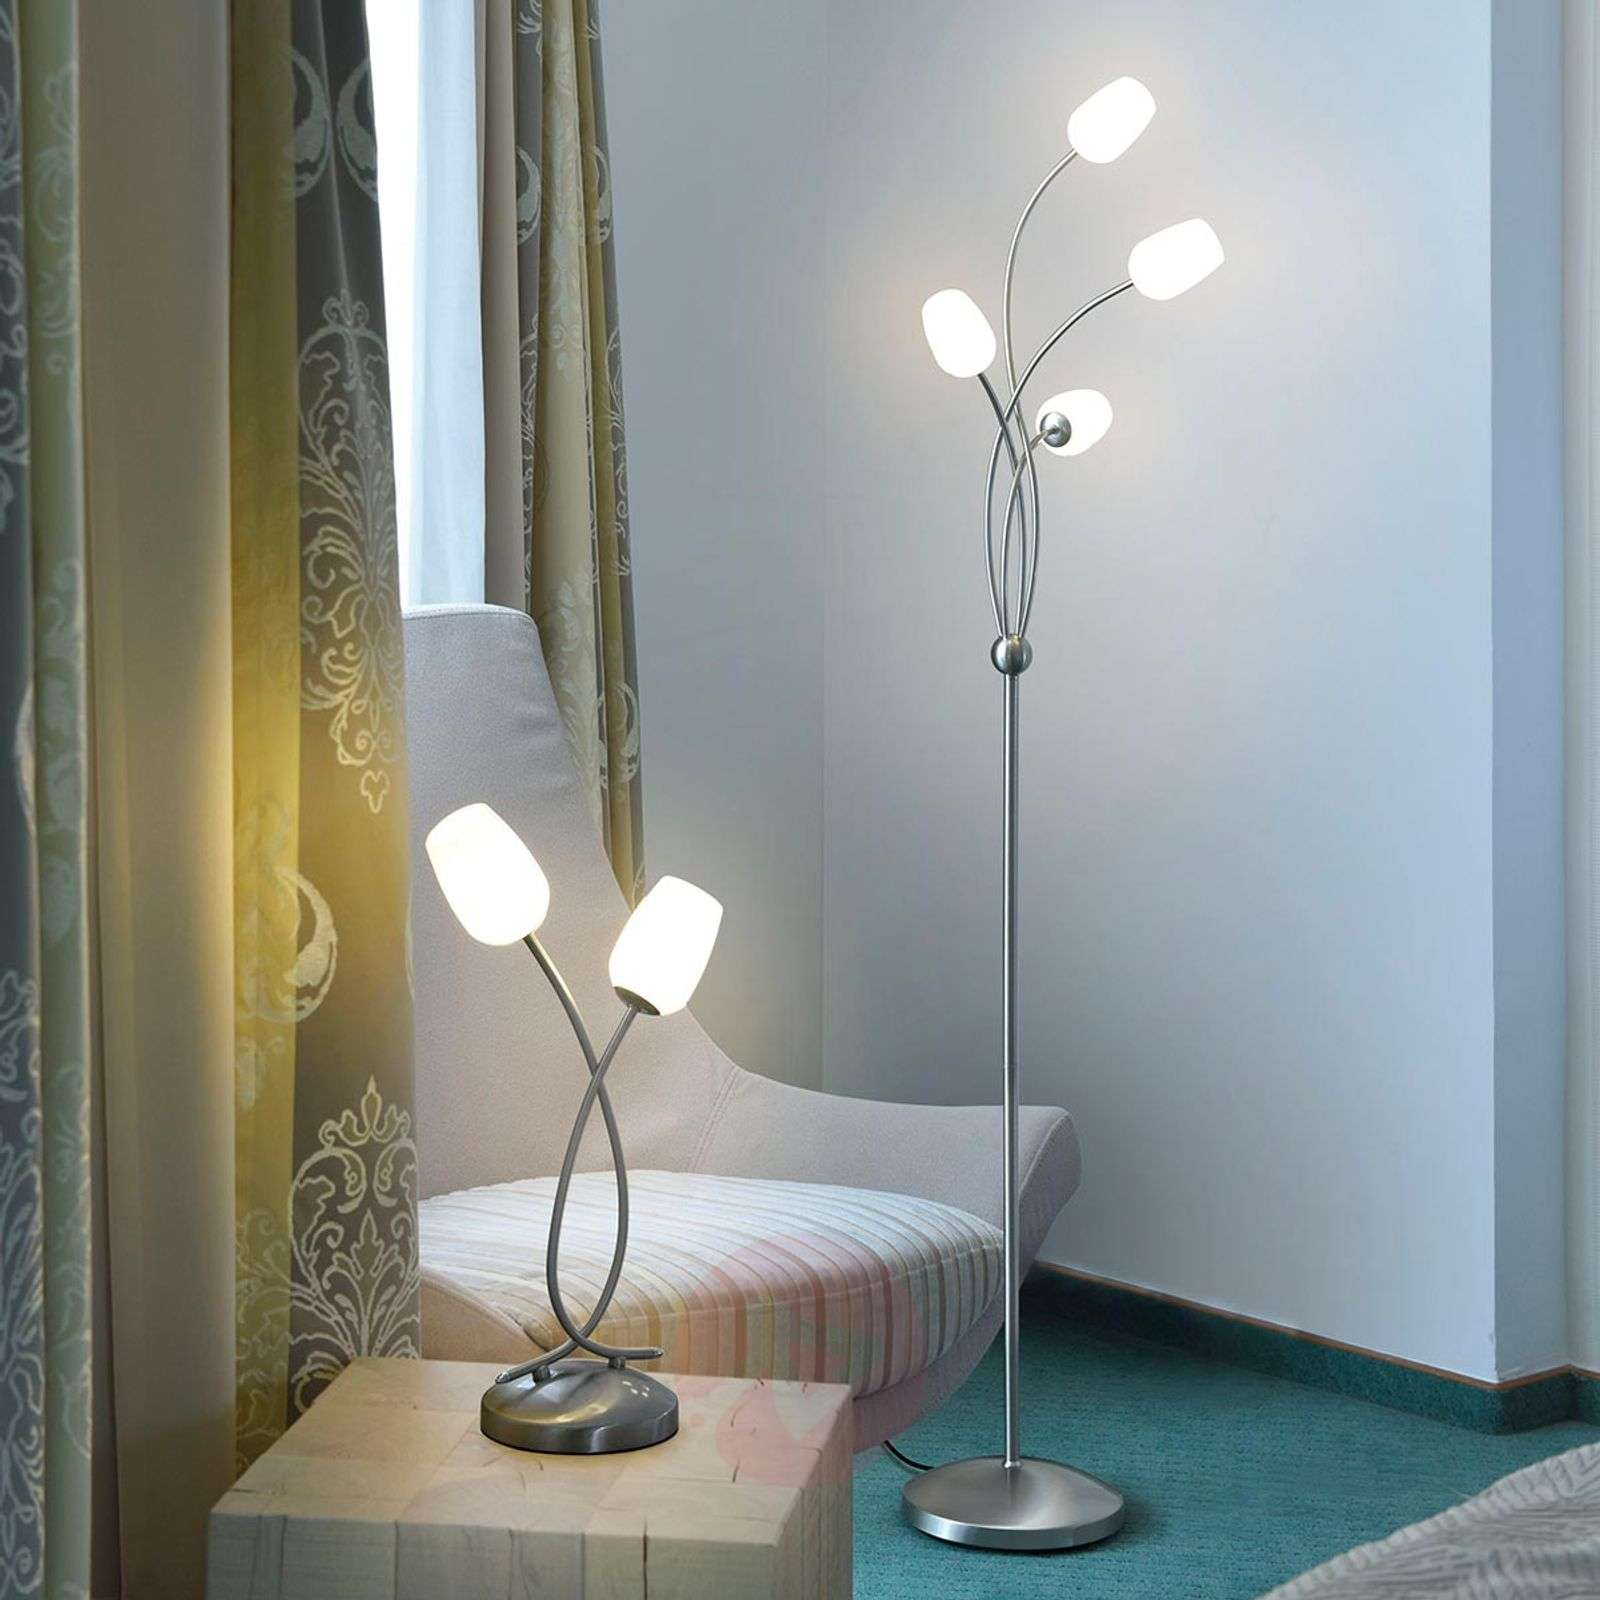 Anastasia lampe à poser LED, dimmable-7610614-01